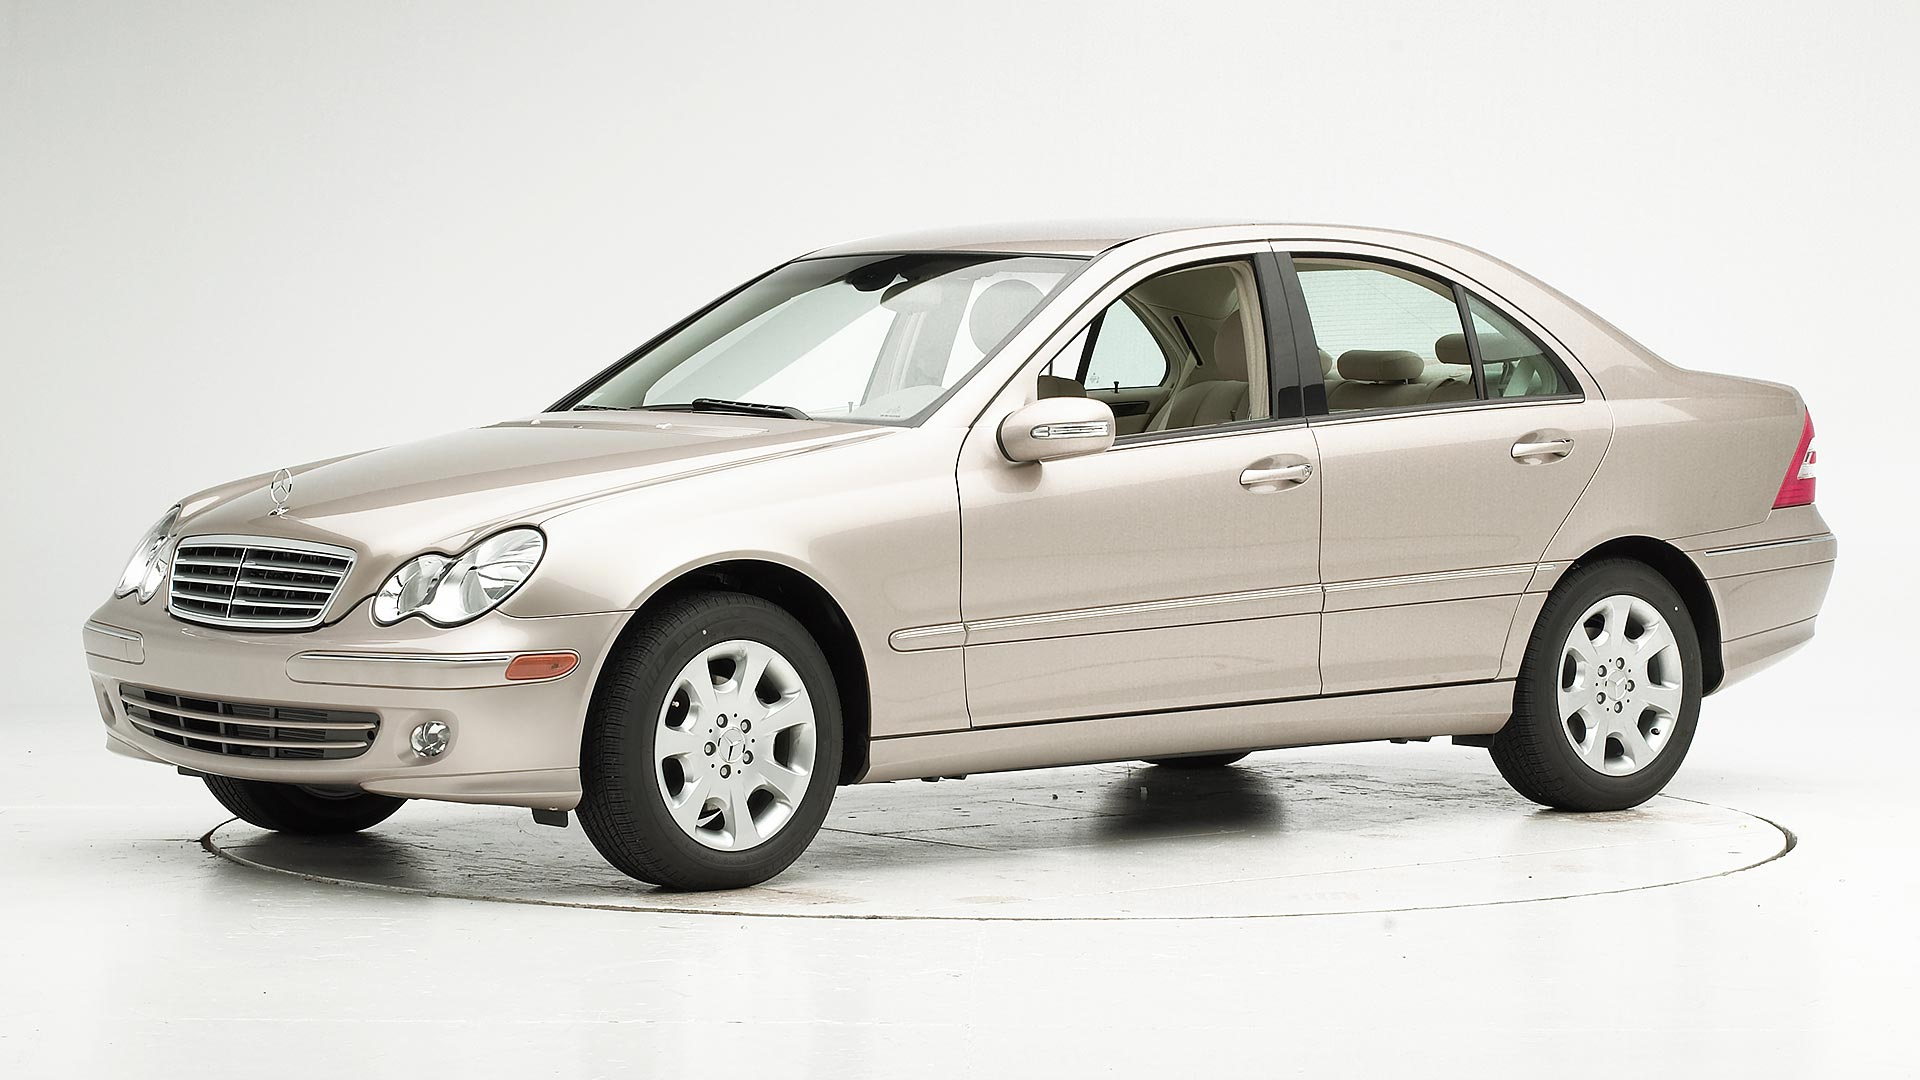 2006 Mercedes-Benz C-Class 4-door sedan